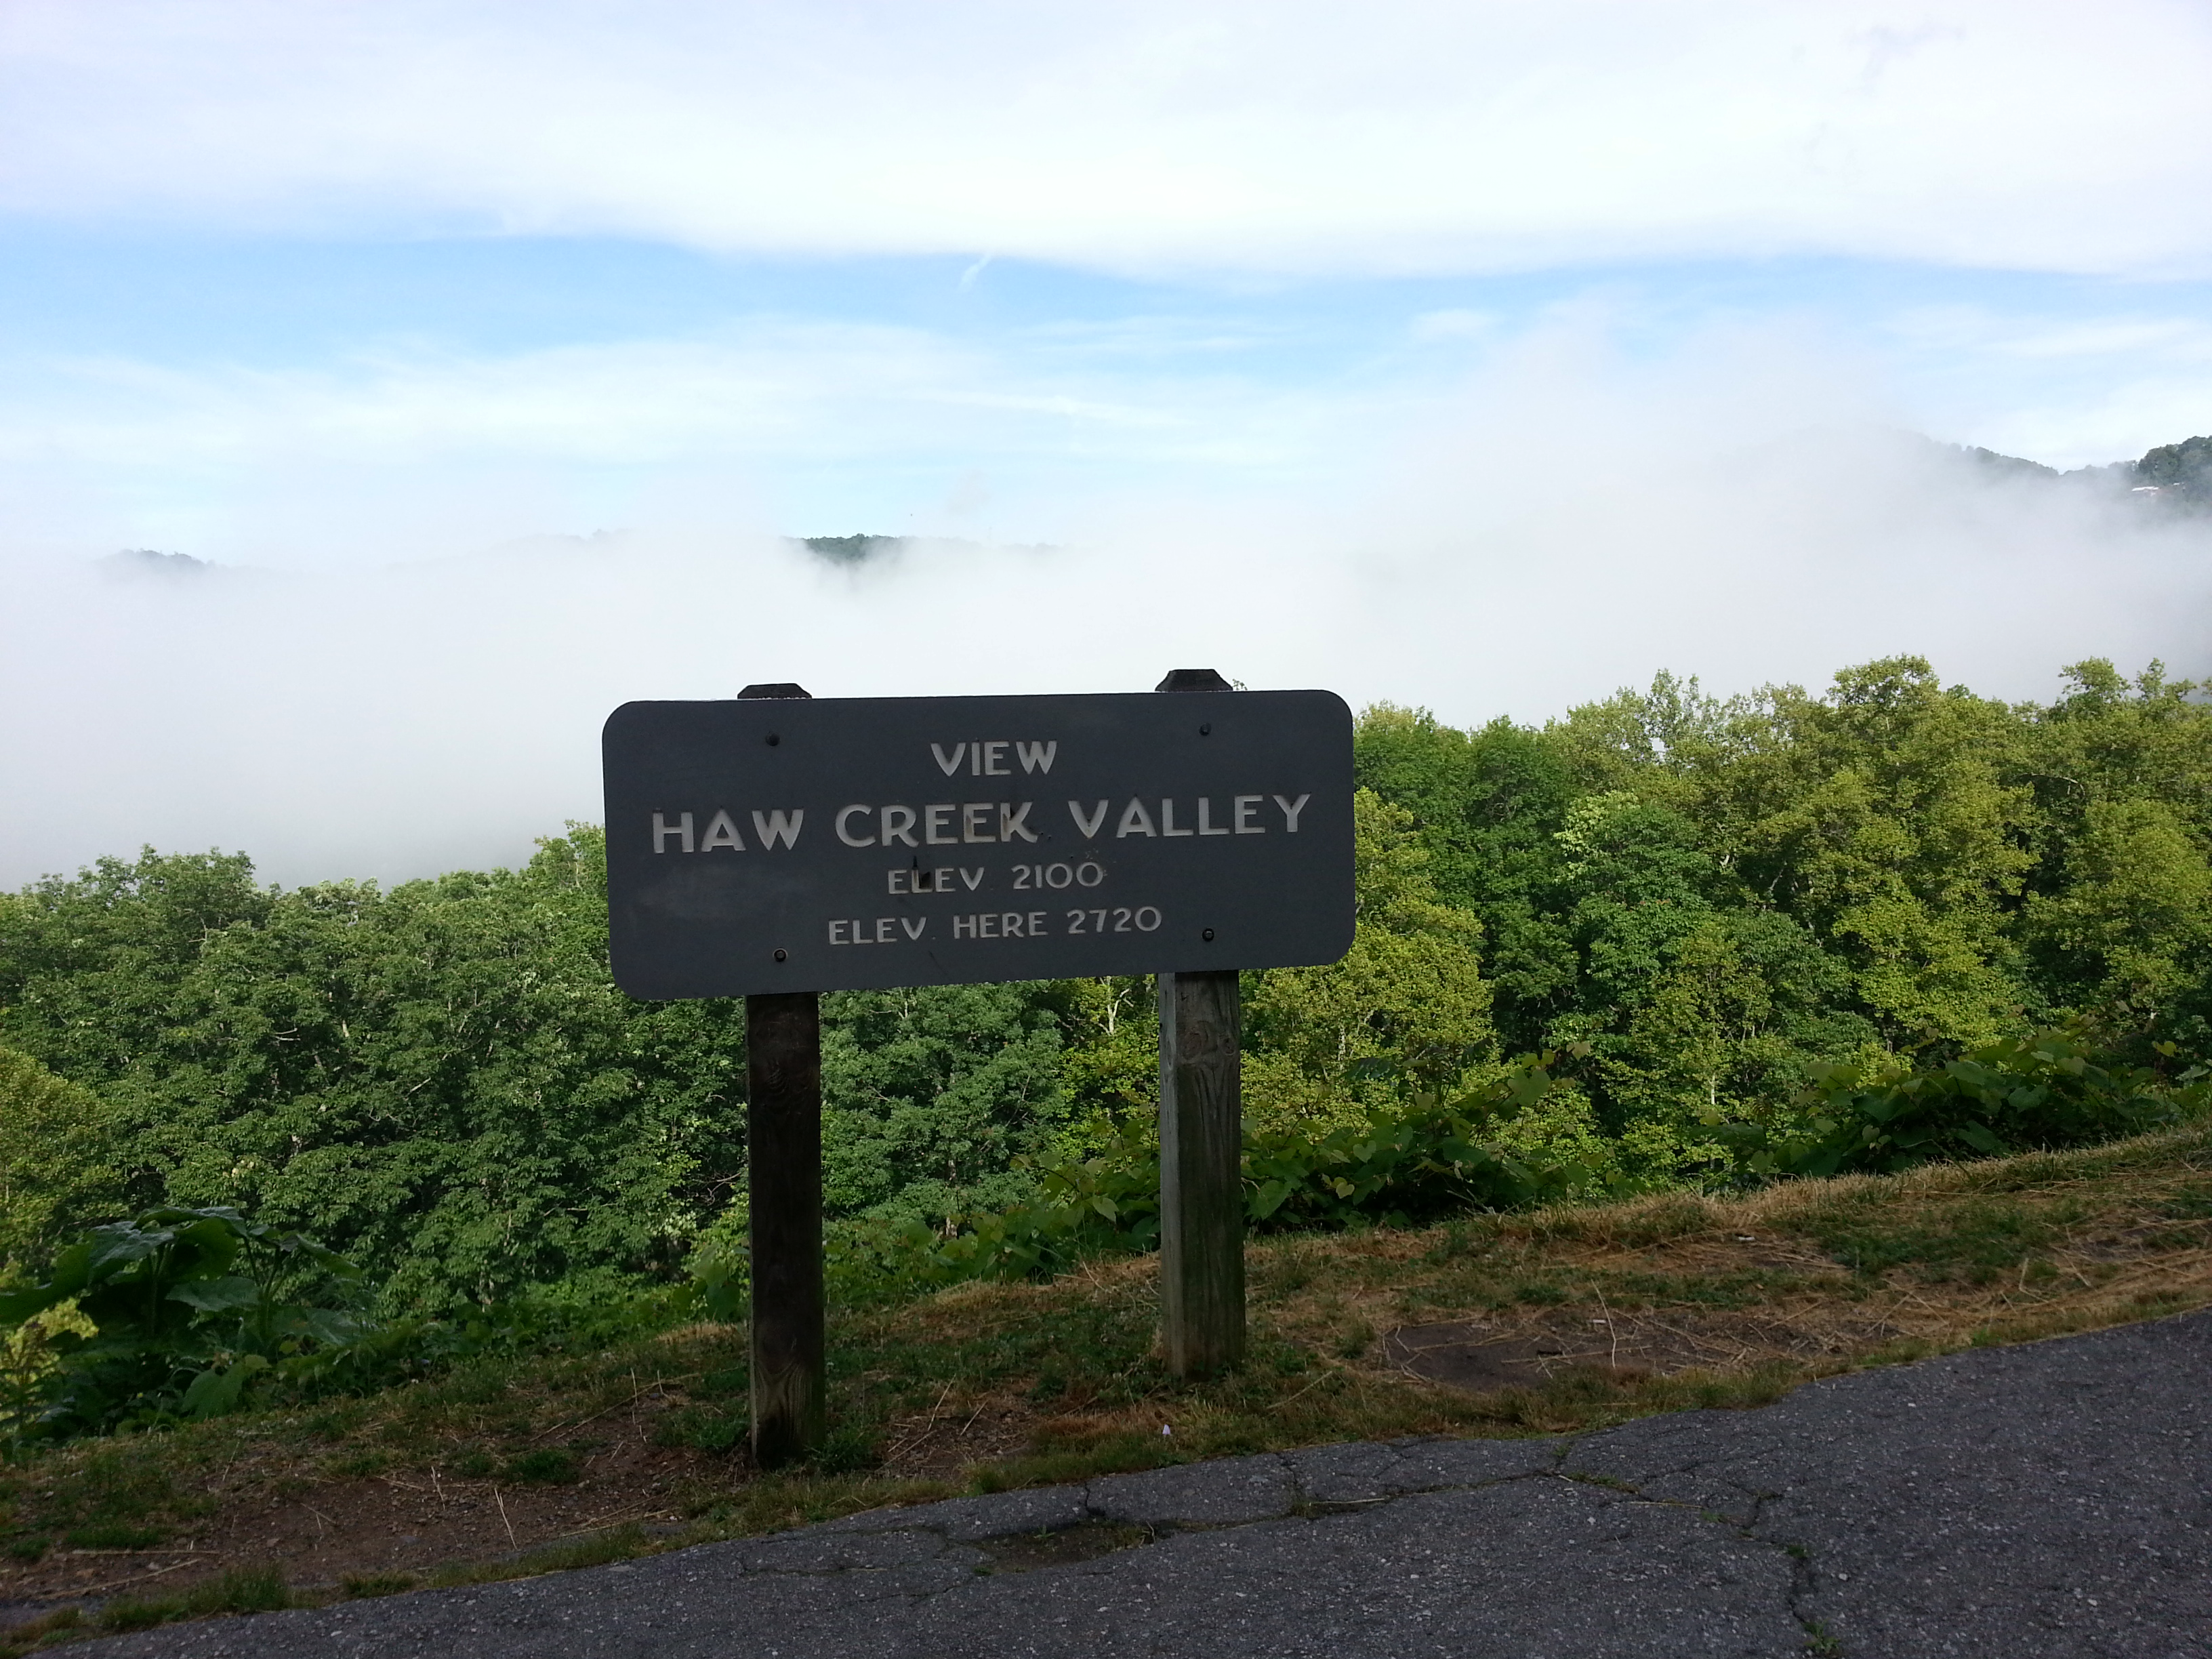 Haw Creek Valley